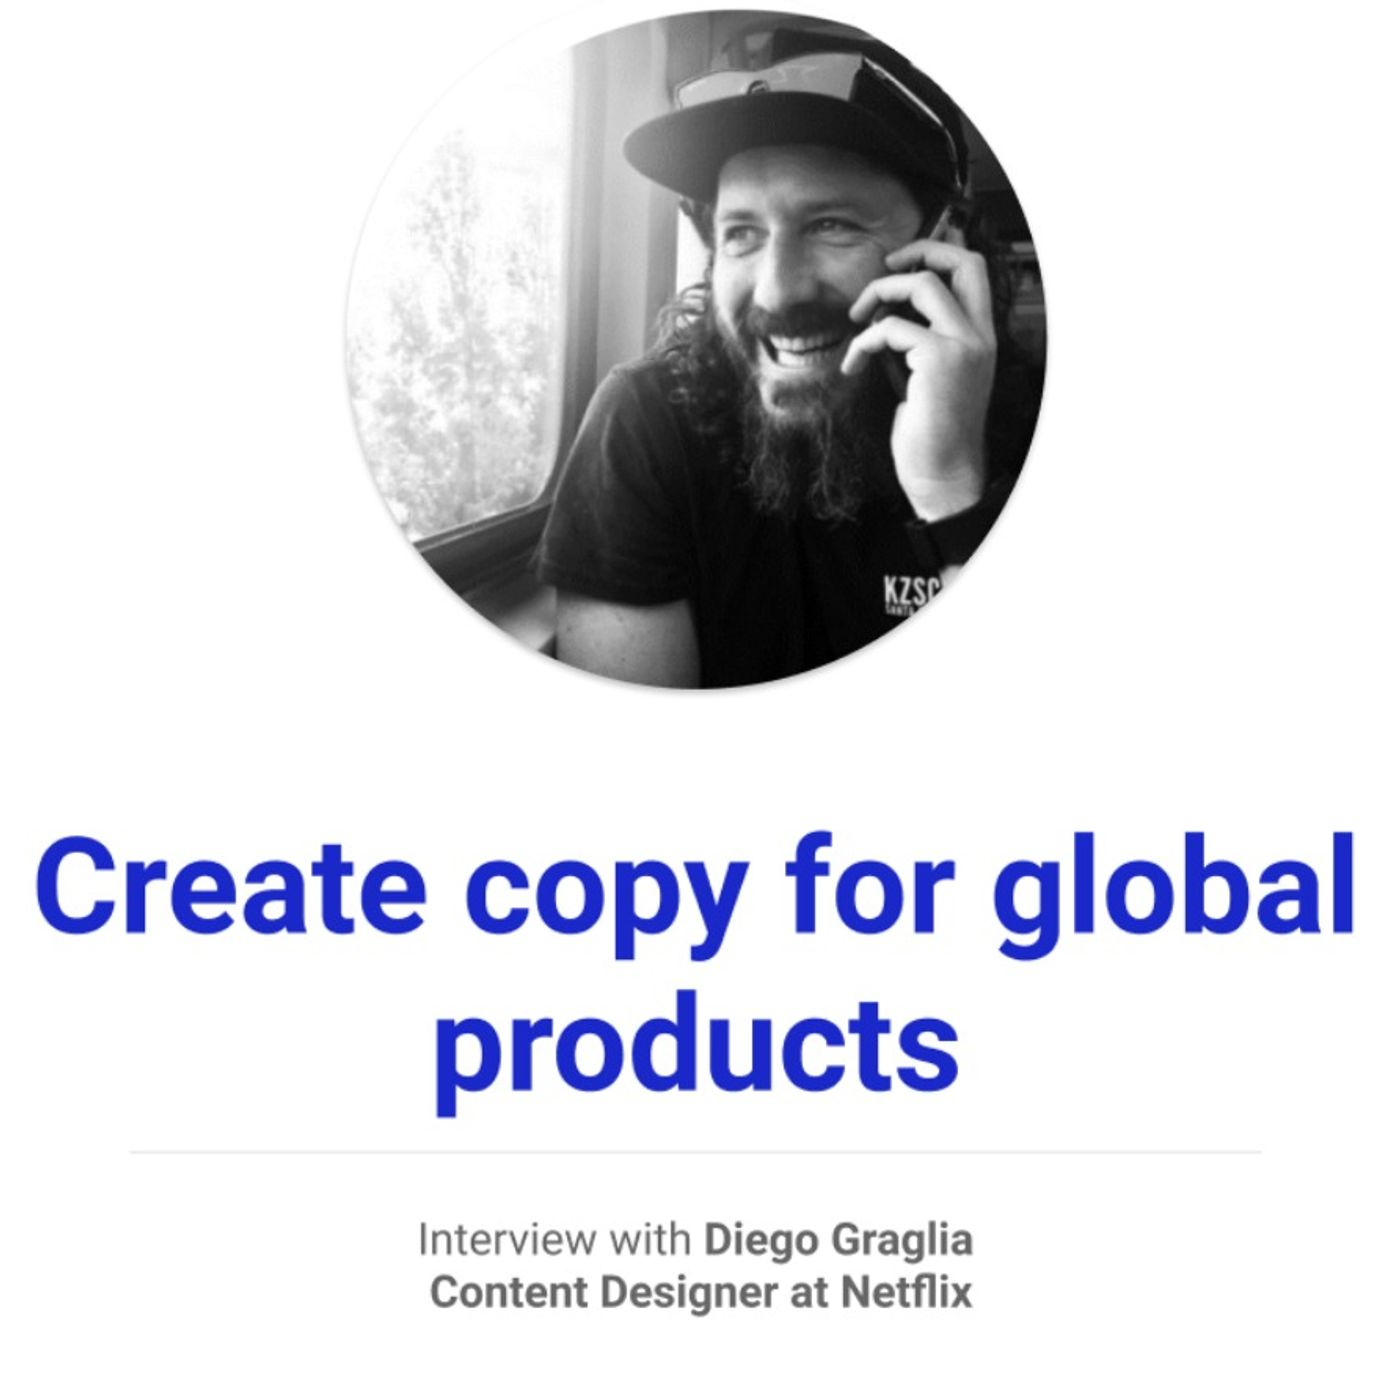 How to create copy for global products with Diego Graglia @ Netflix